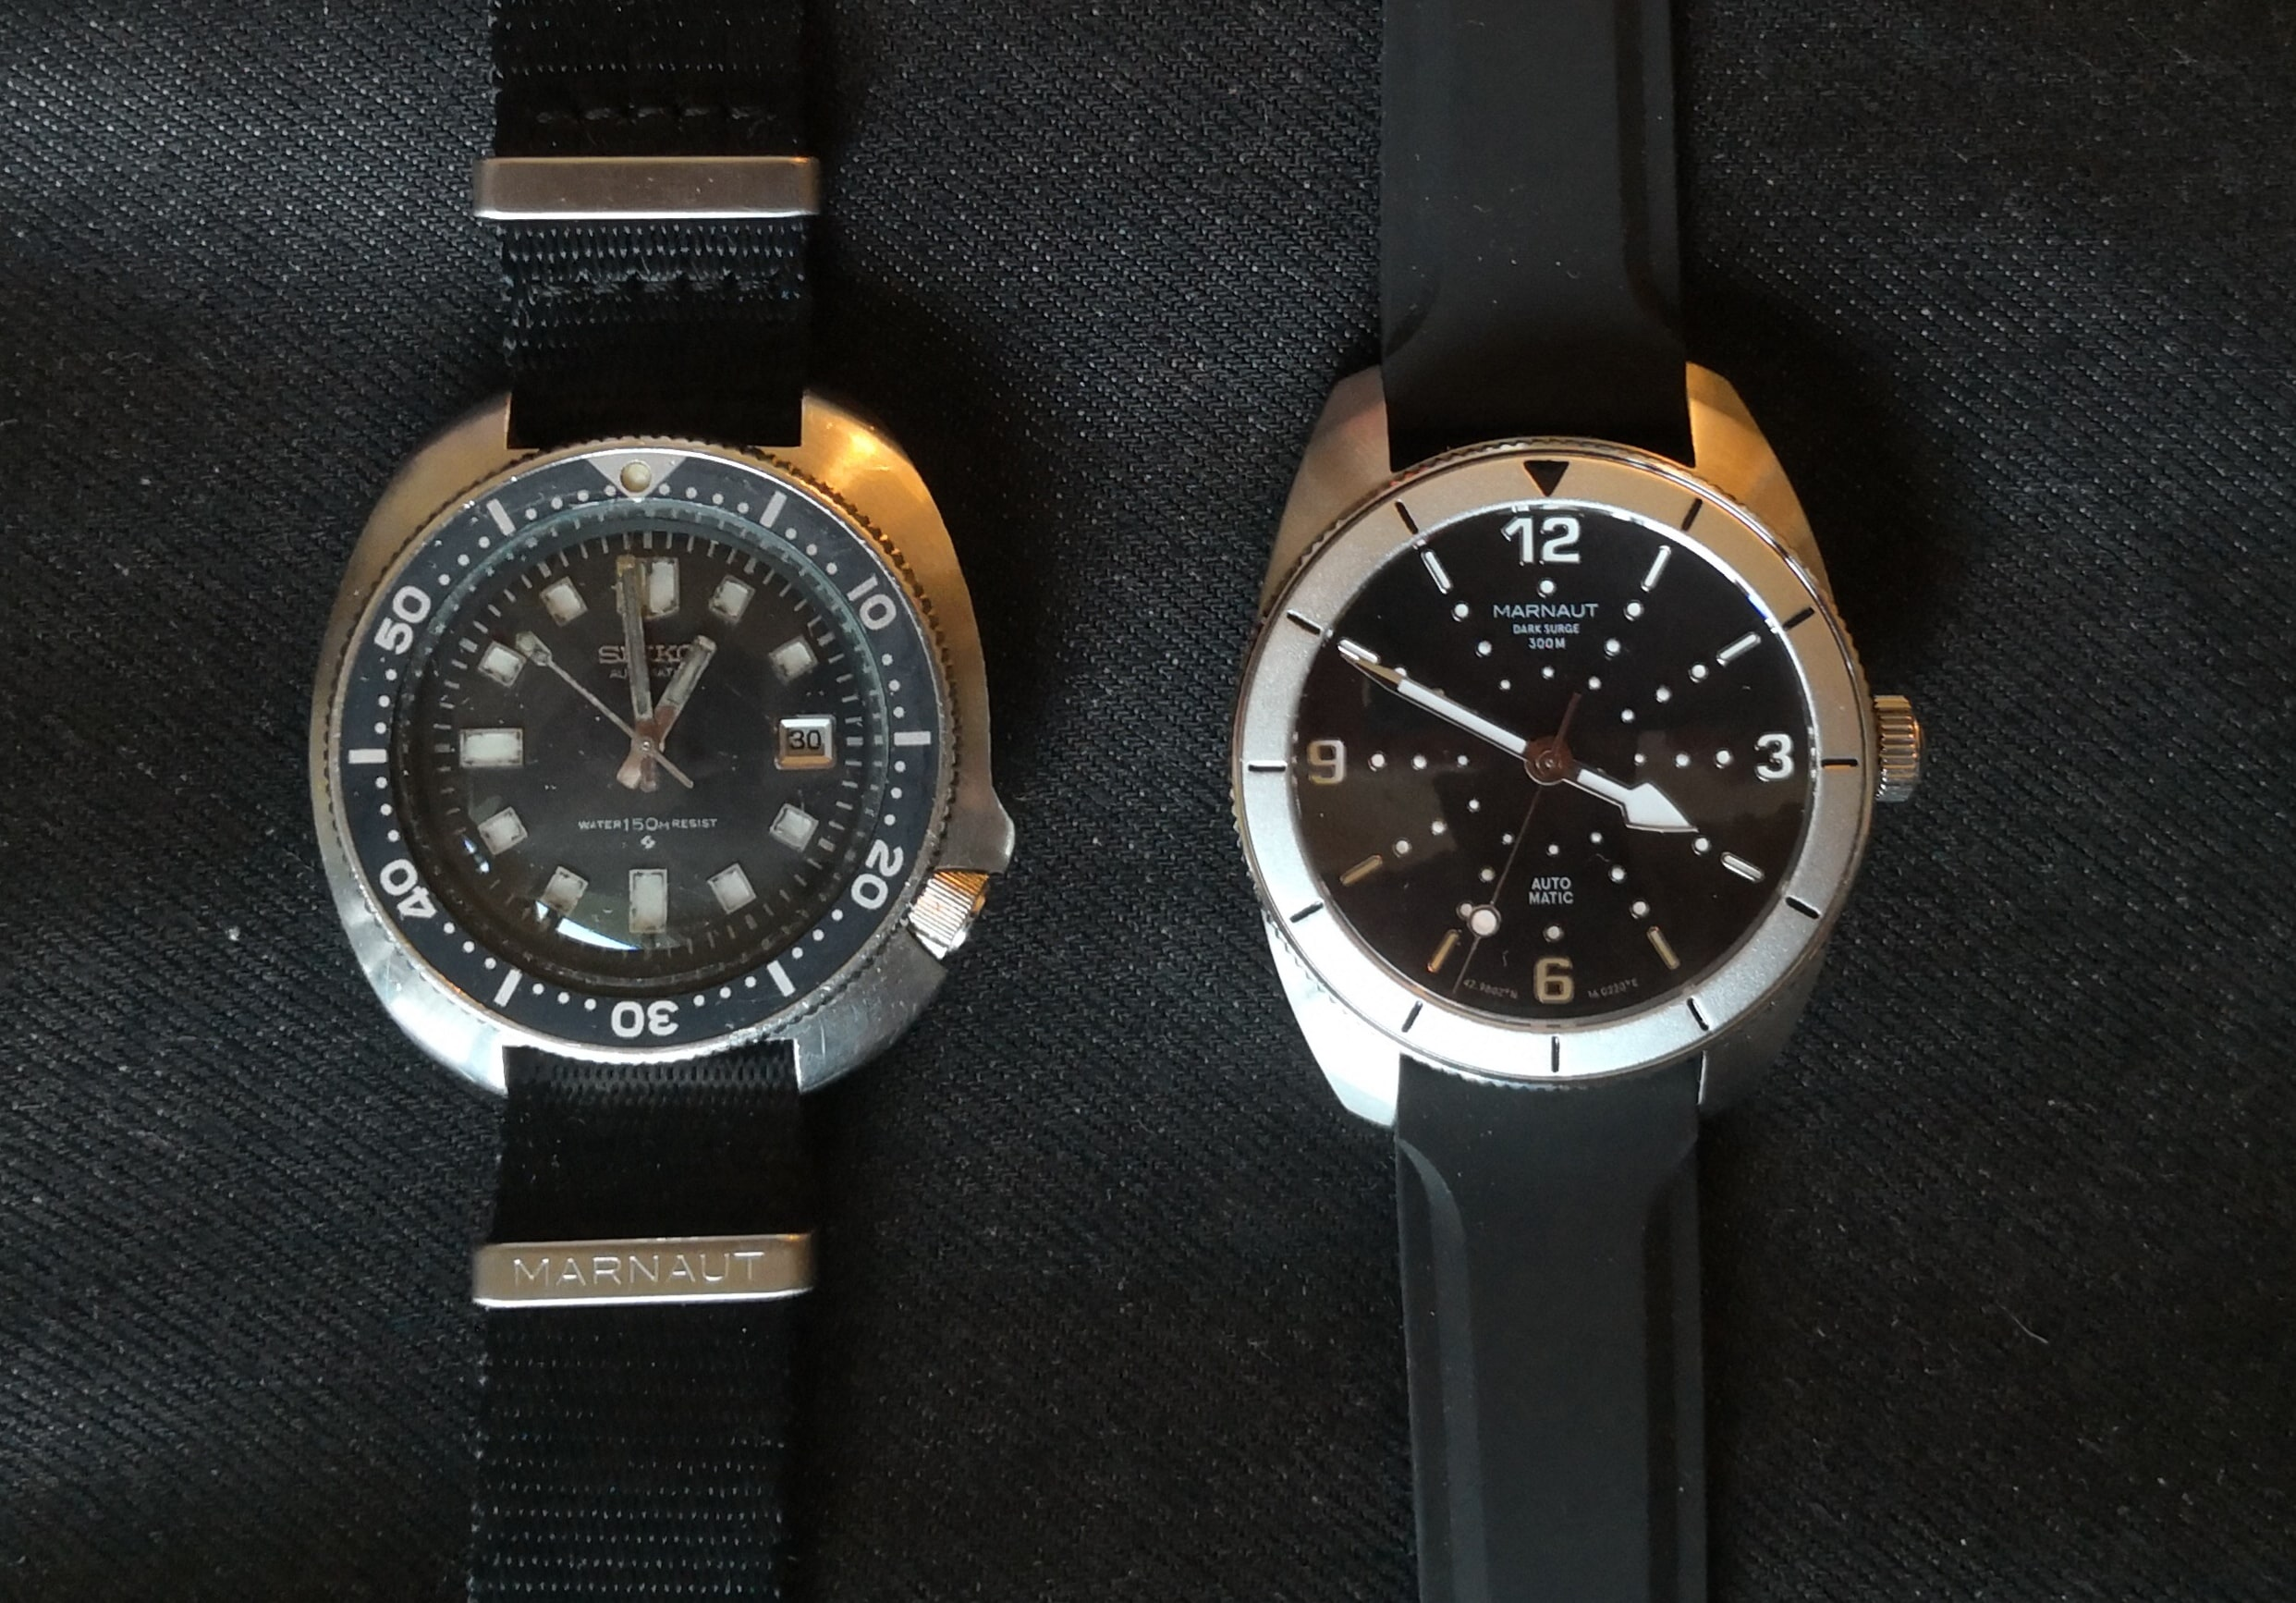 MARNAUT watches